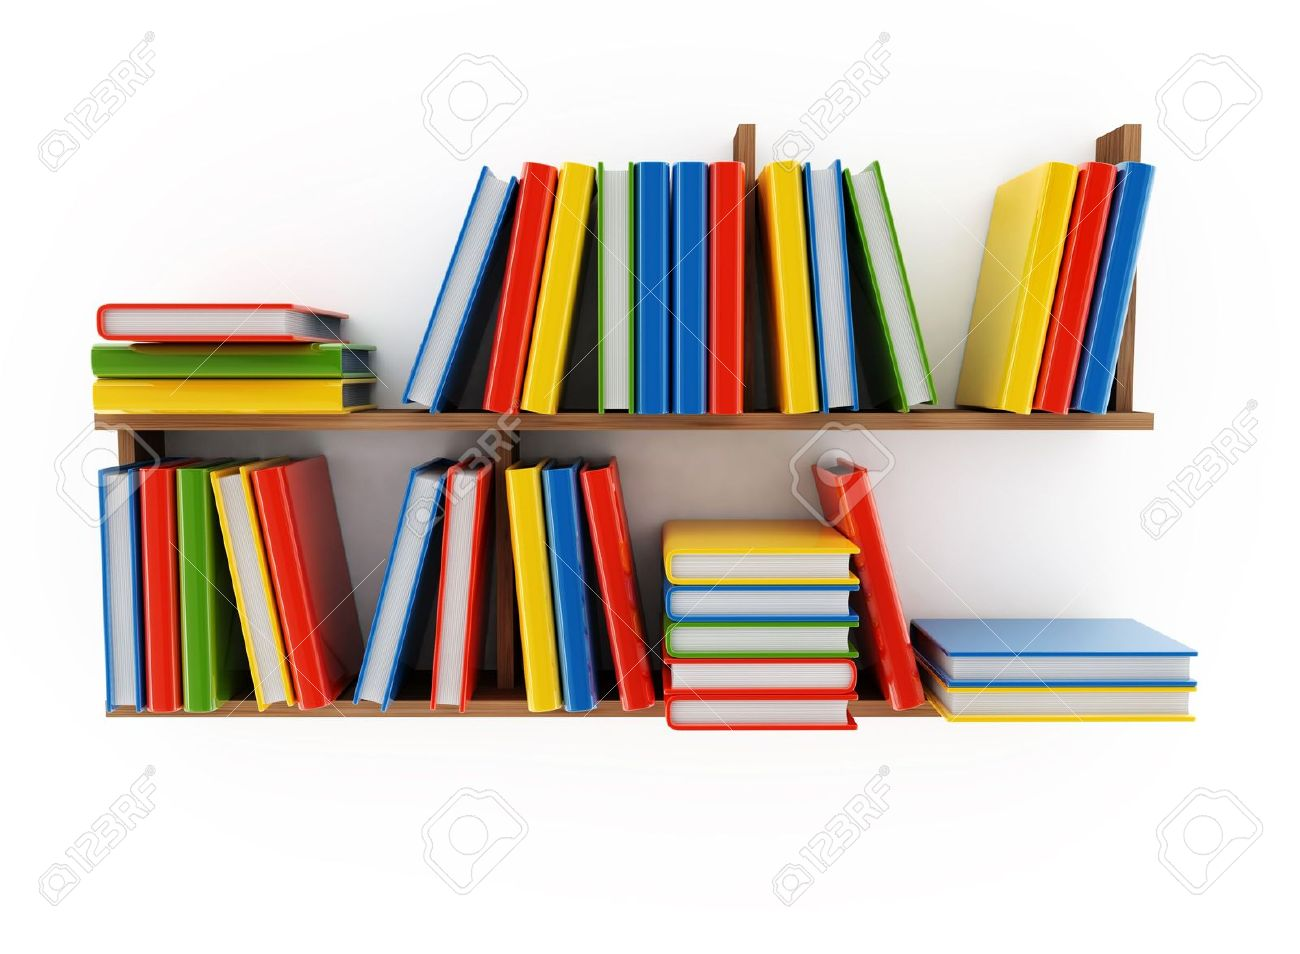 Book Shelf With Various Books On A White Background Stock Photo